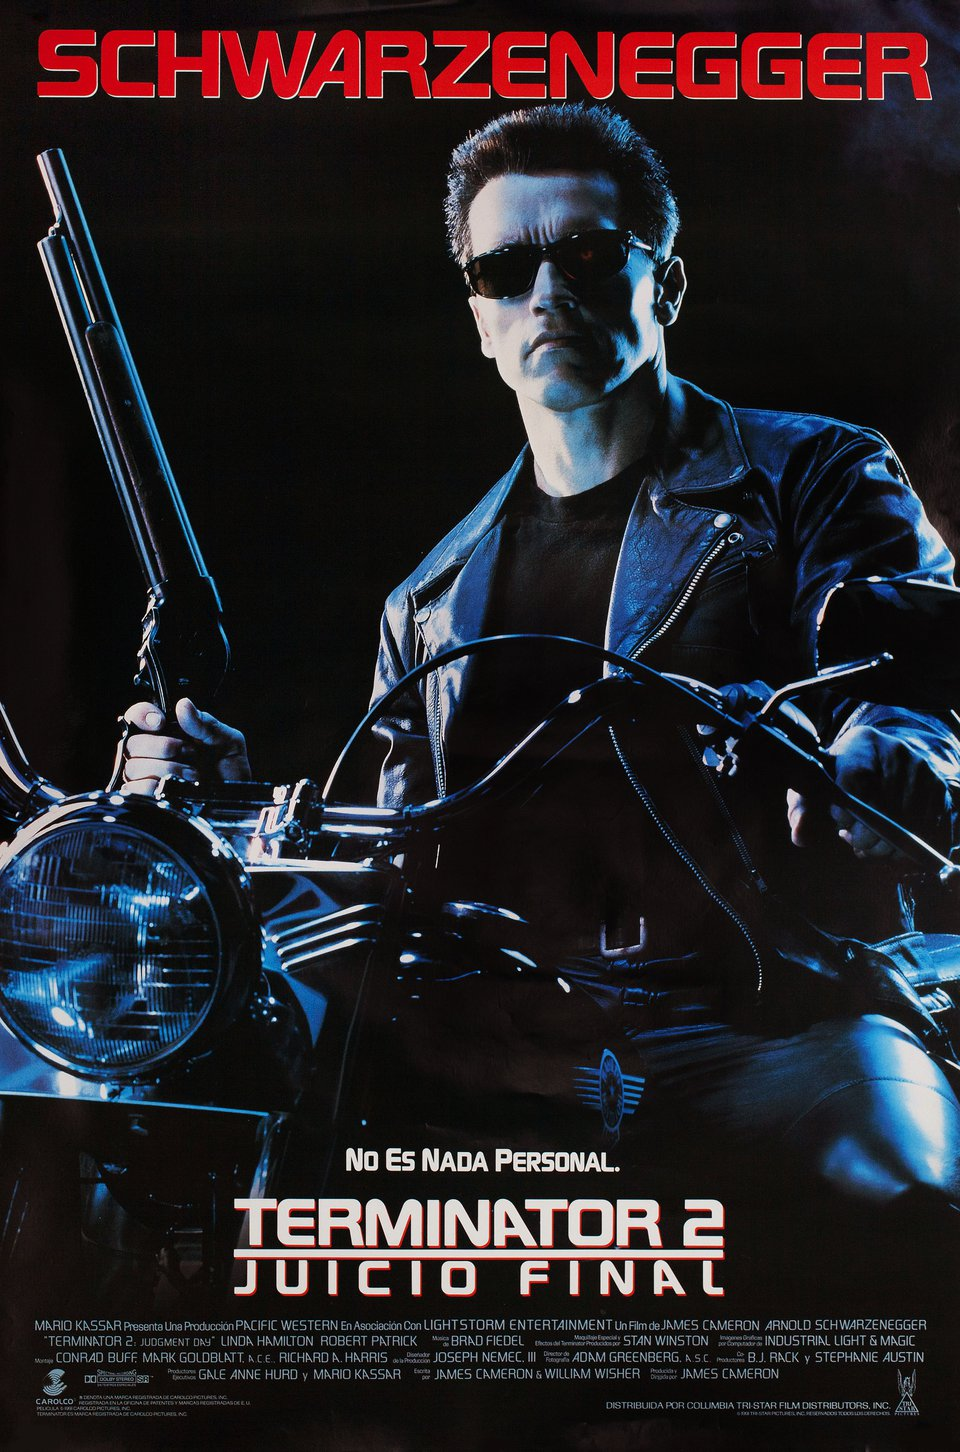 Terminator 2: Judgment Day 1991 U.S. One Sheet Poster